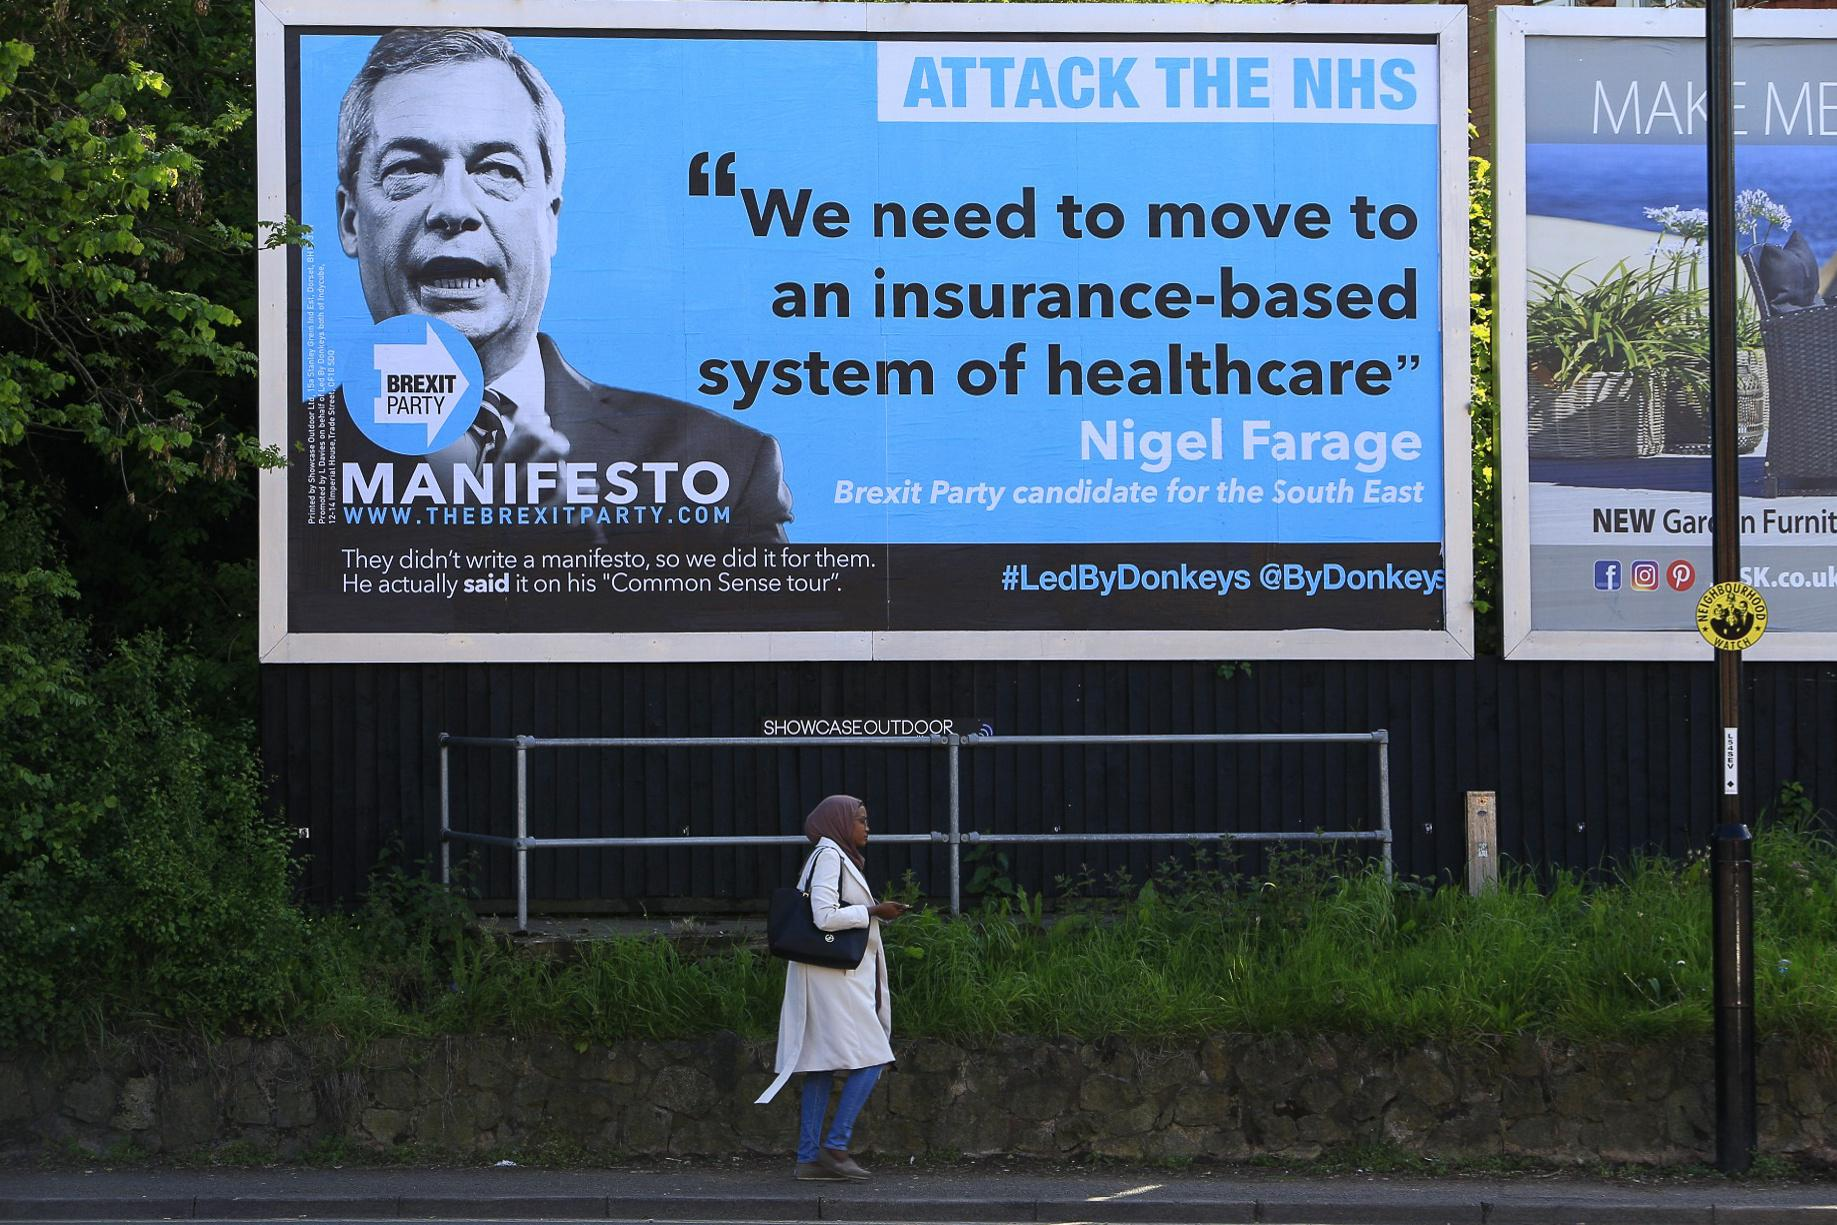 Why the Led by Donkeys billboards won't change anyone's mind on Brexit